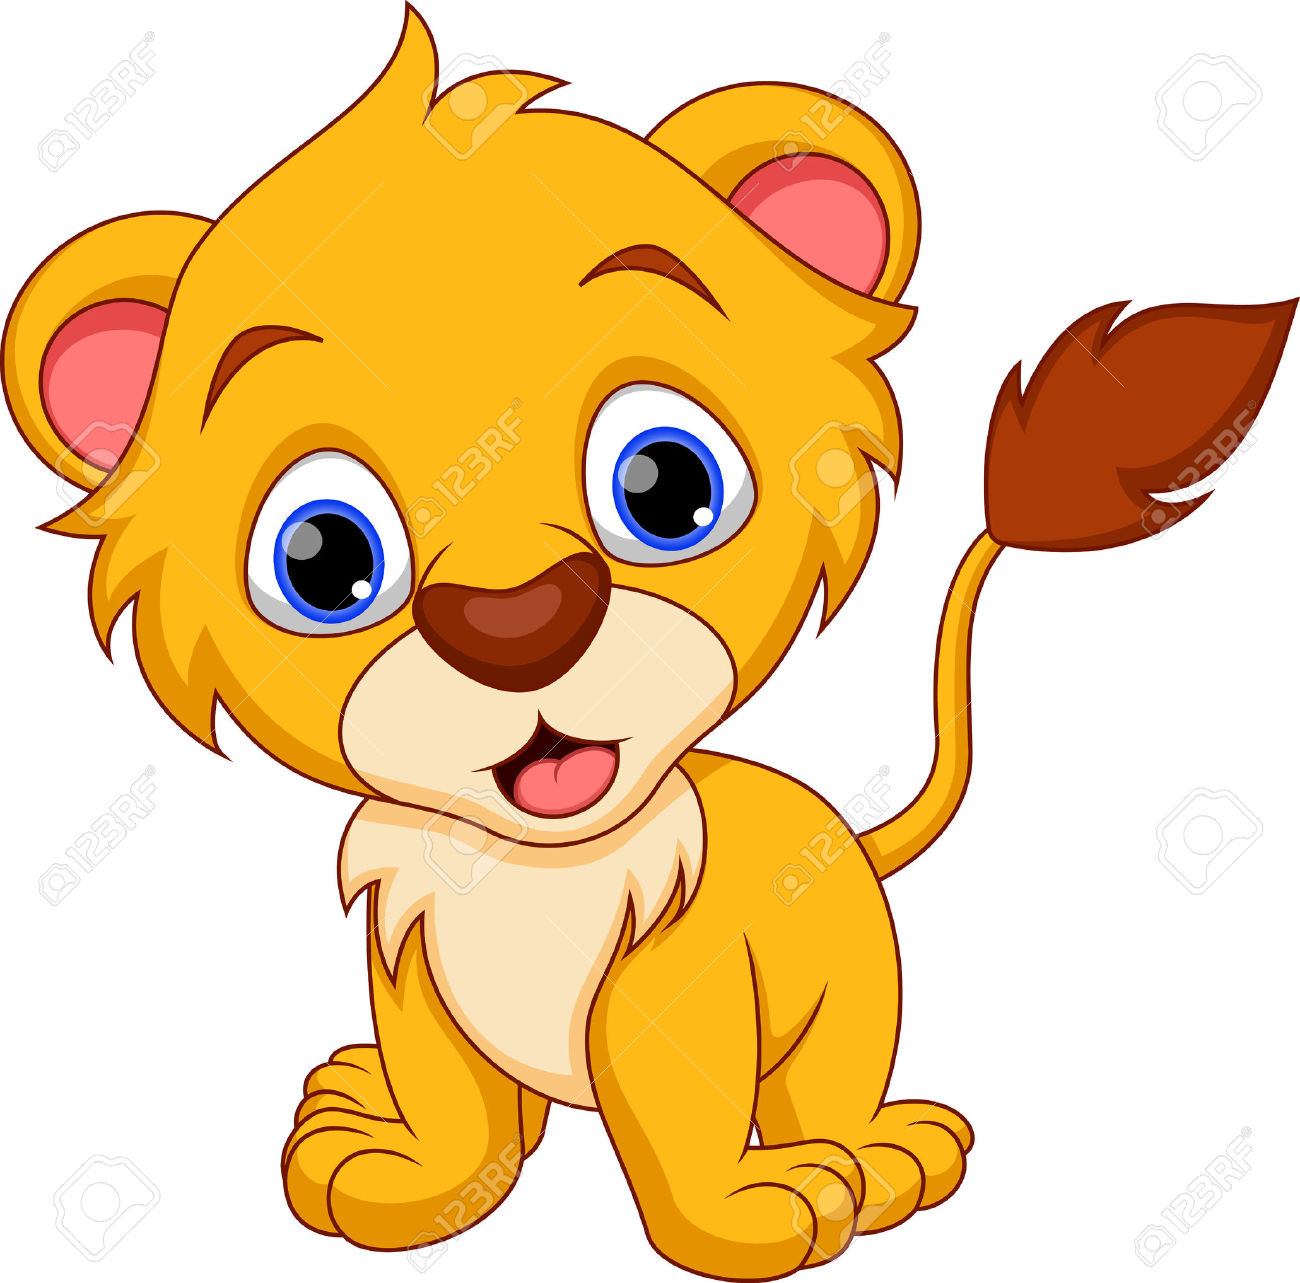 898 Lion Cub Stock Illustrations, Cliparts And Royalty Free Lion.